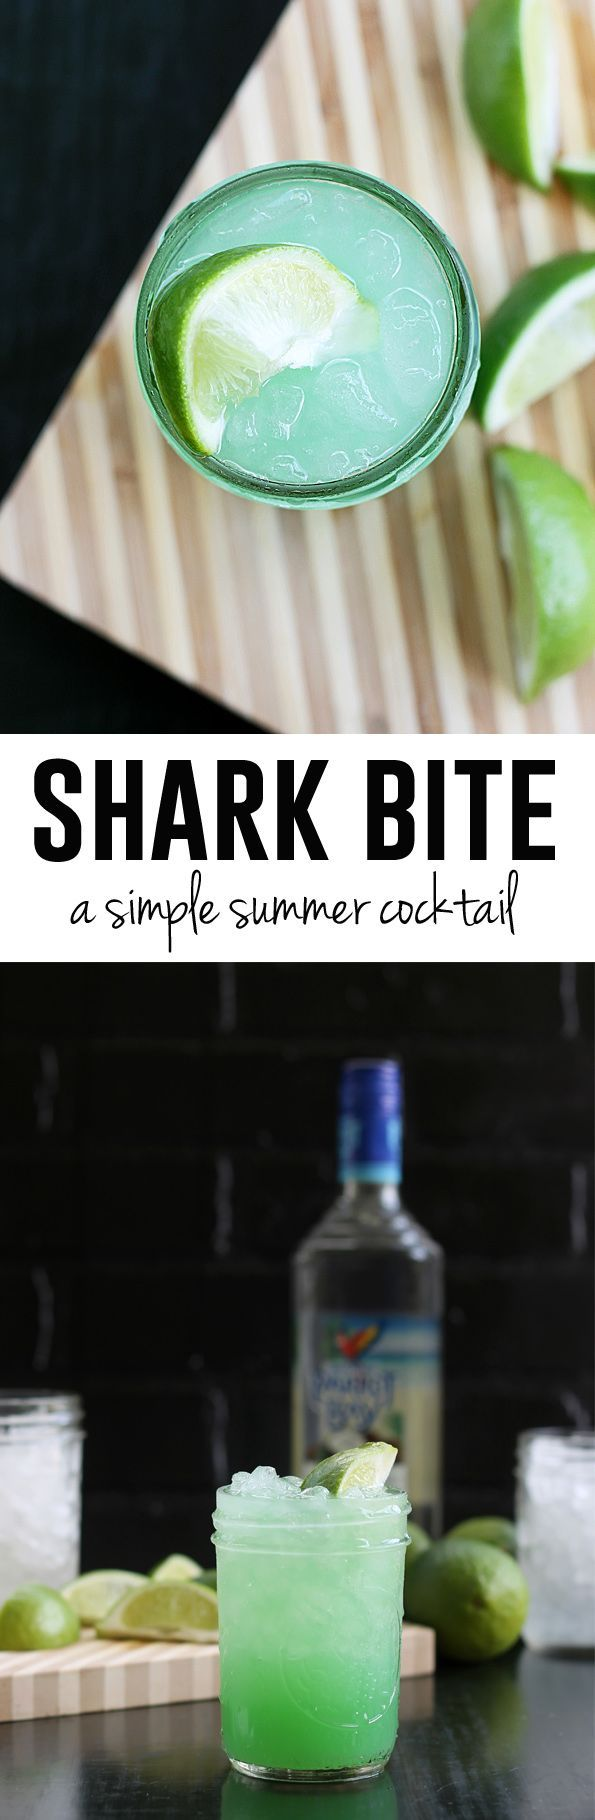 Summer time means bringing a beach vibe to the cocktail list. This Shark Bite cocktail is perfect for Emerald Isle!